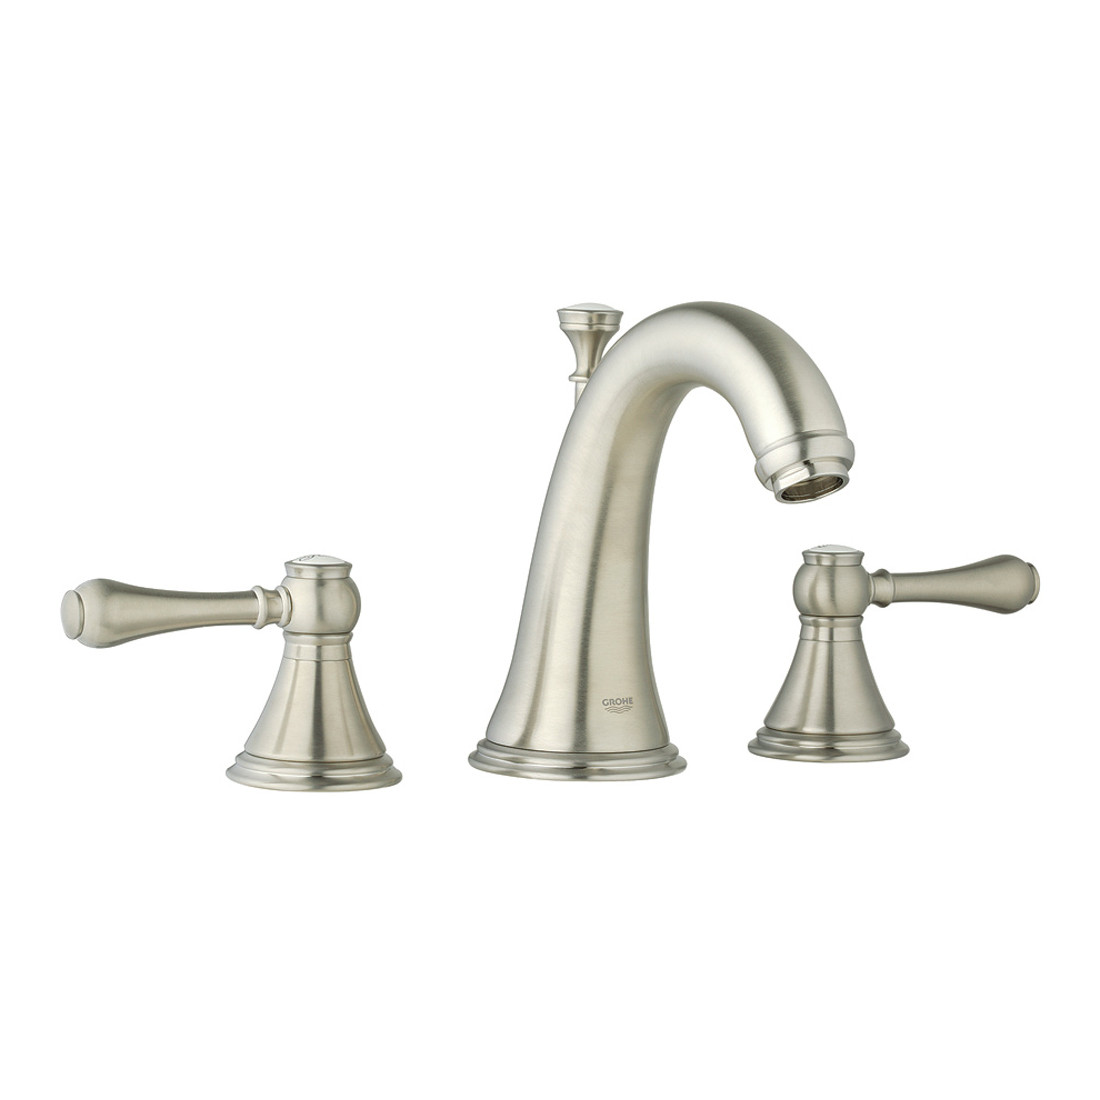 Best ideas about Grohe Bathroom Faucets . Save or Pin Grohe Geneva Widespread Faucet Now.